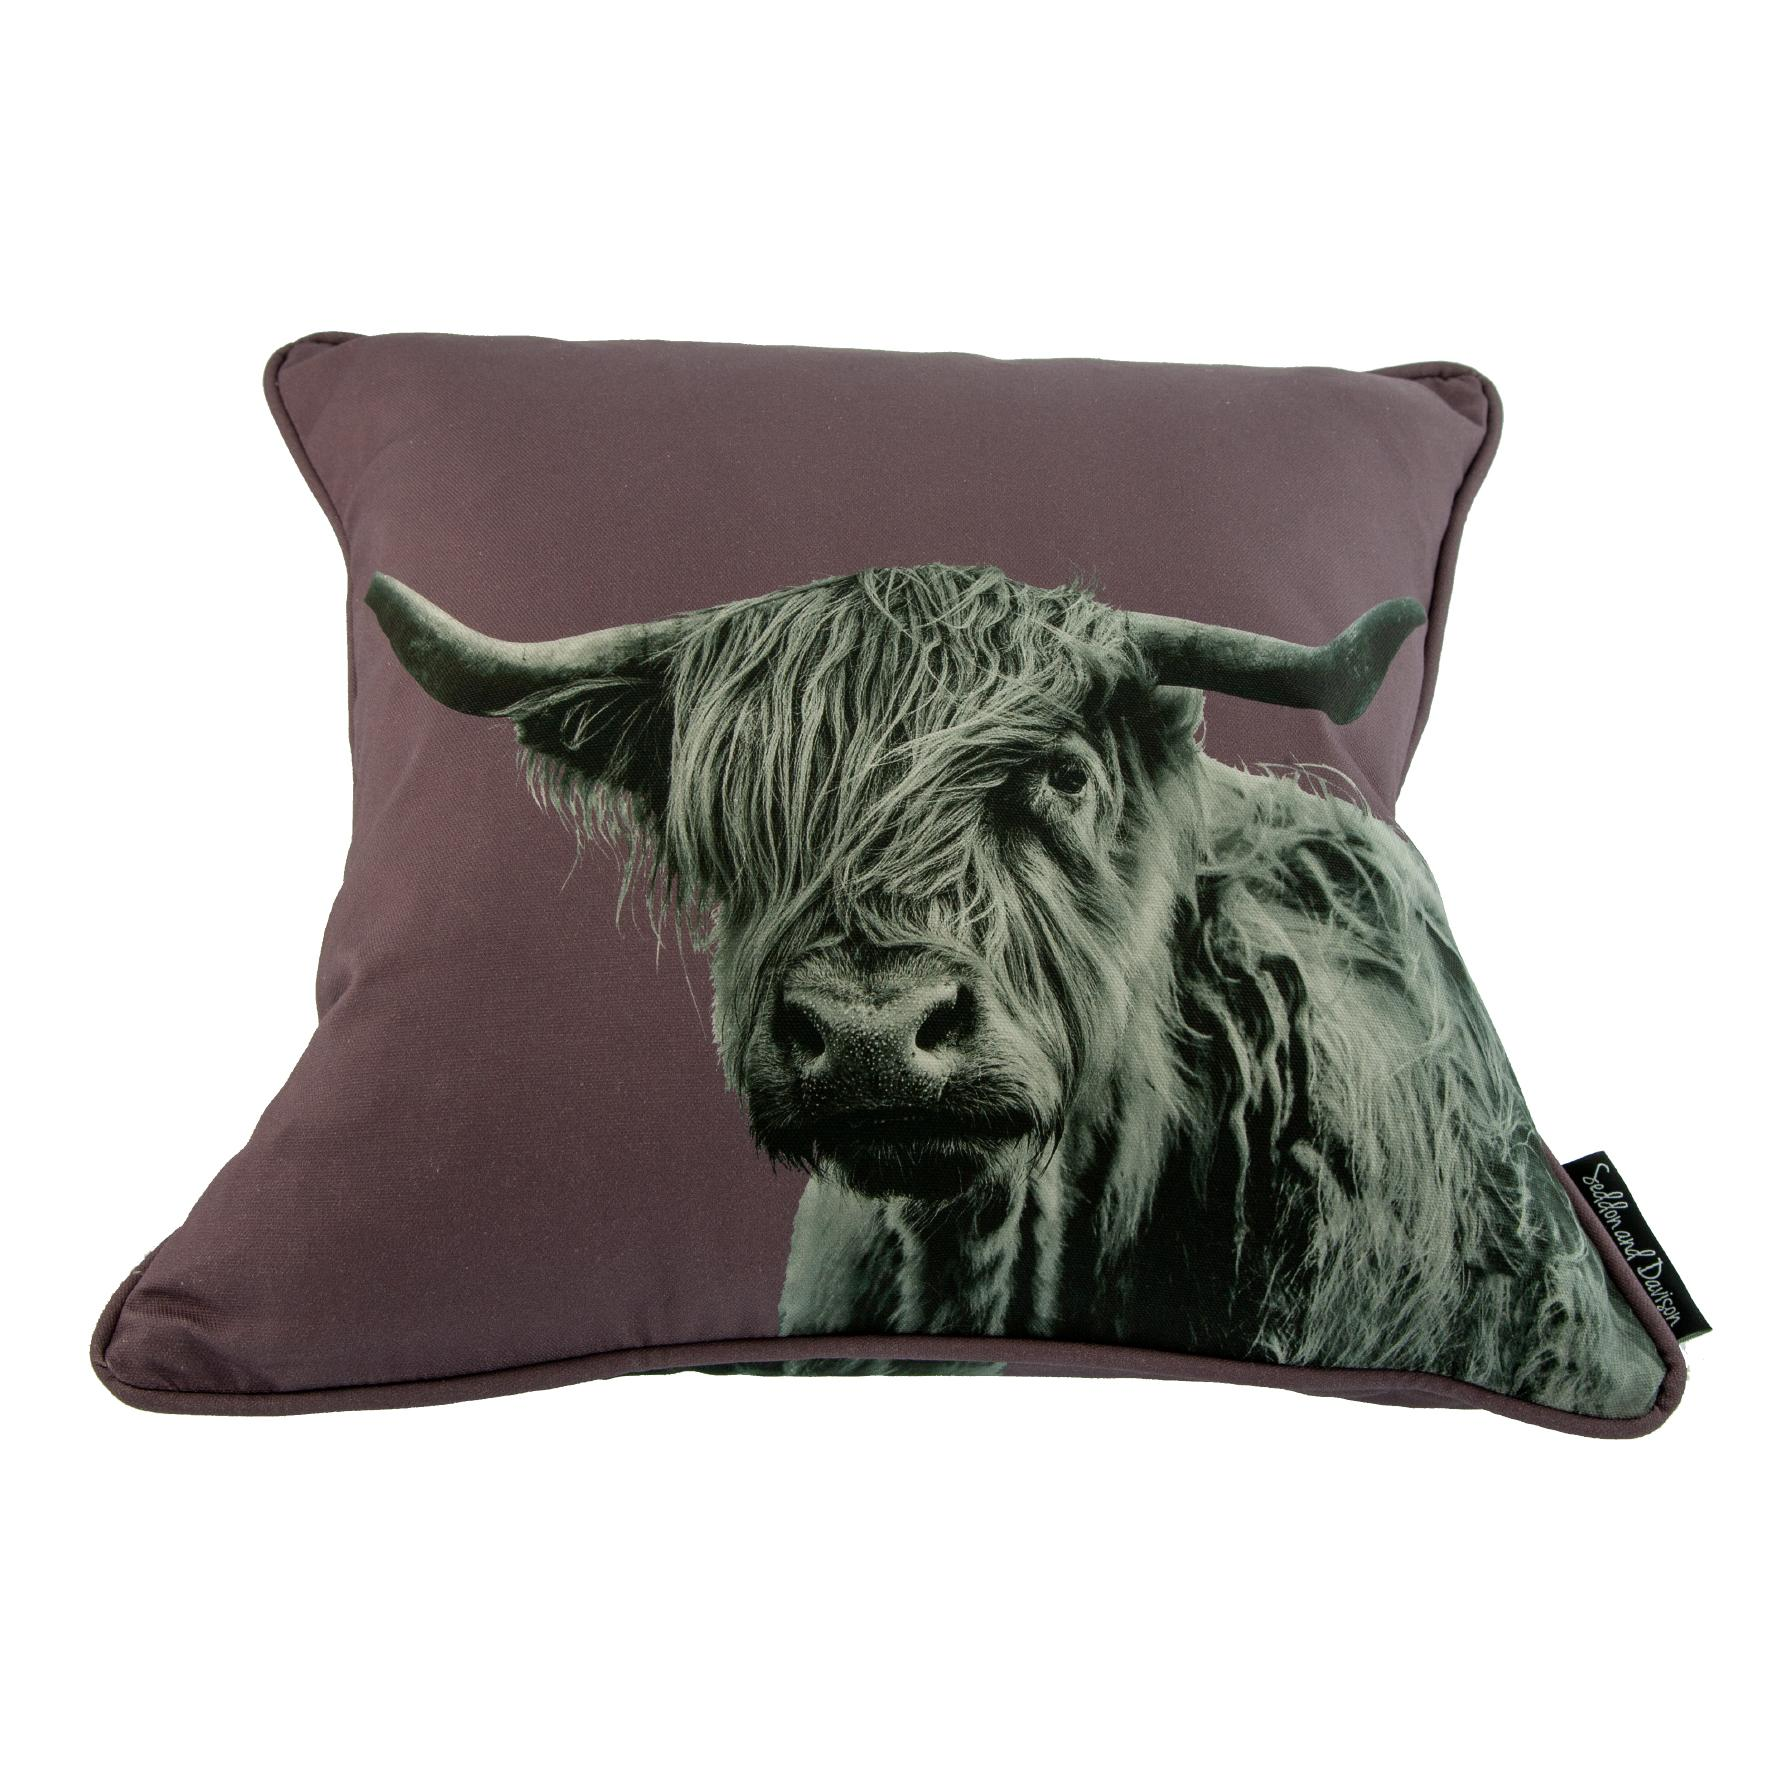 Shaggy Highland Cow Cushion on Dusky Pink